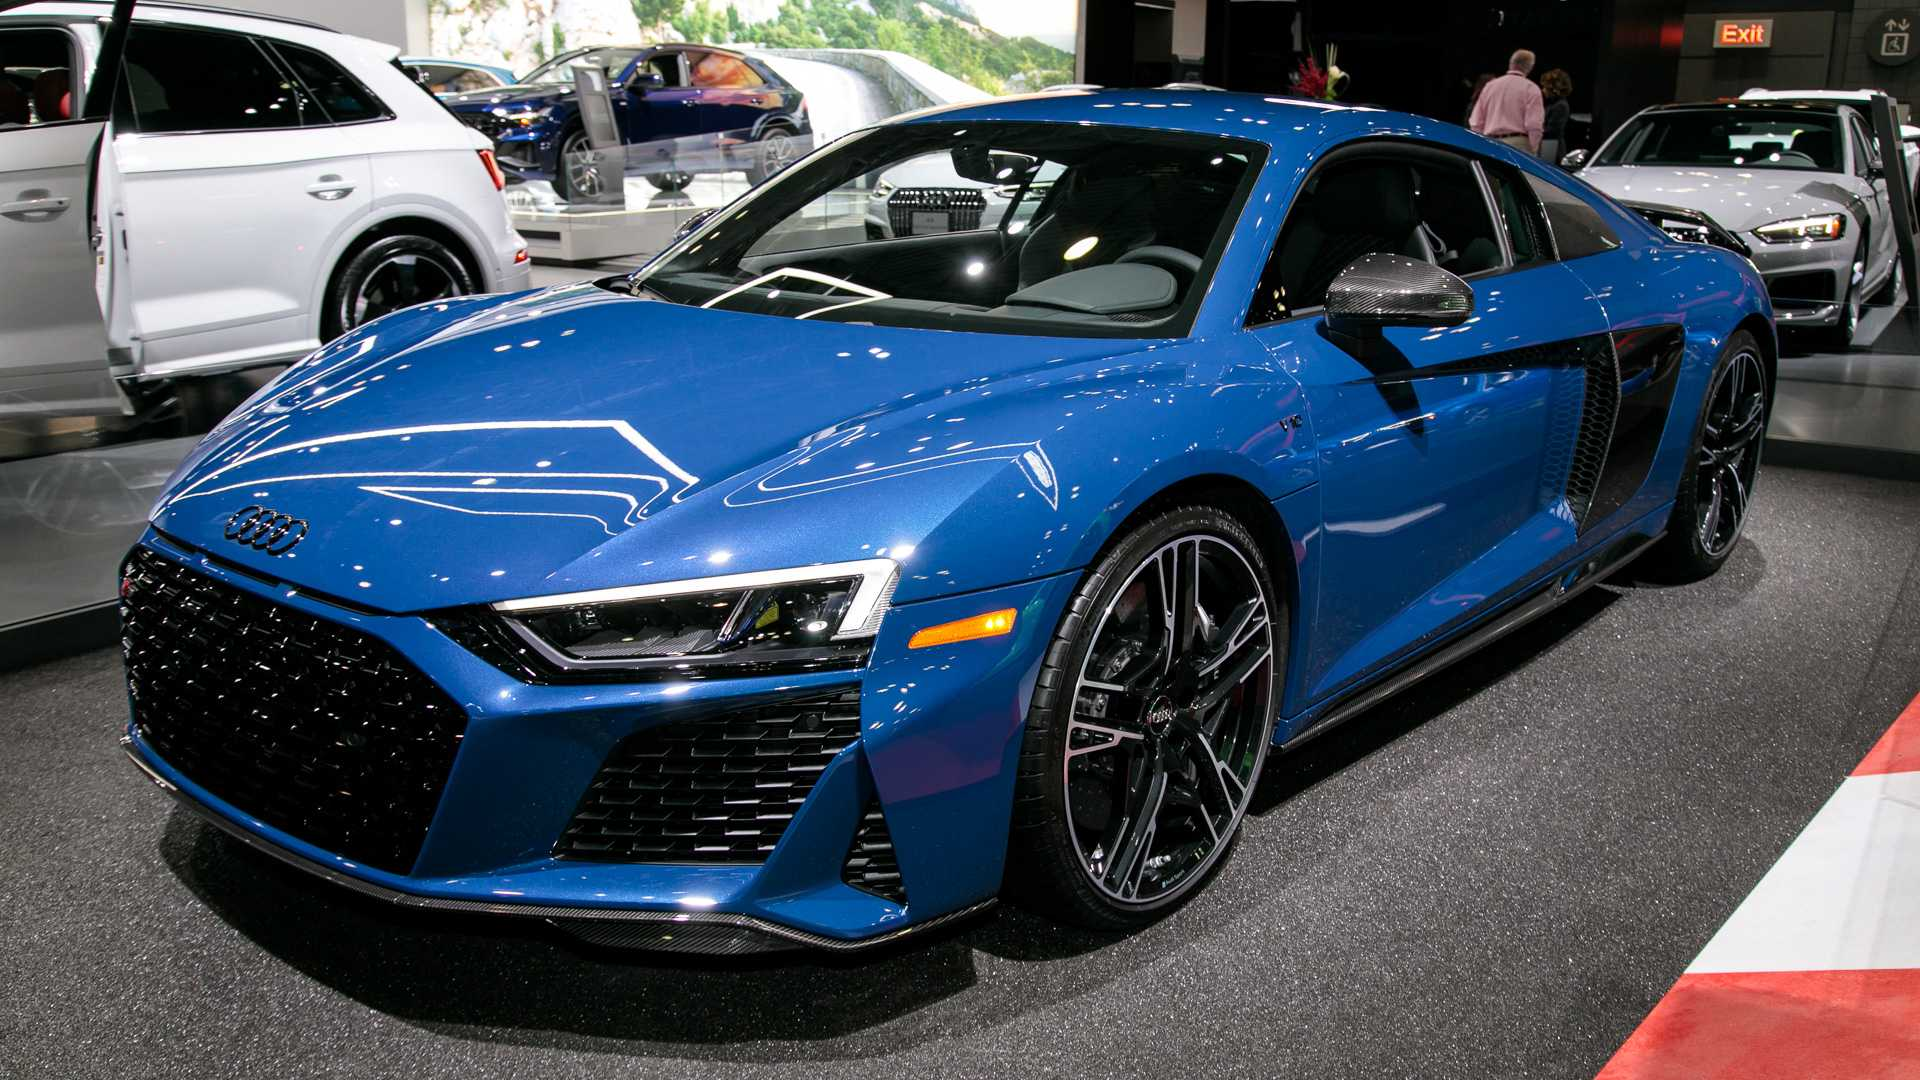 95 The Best 2020 Audi R8 V10 Spyder Research New